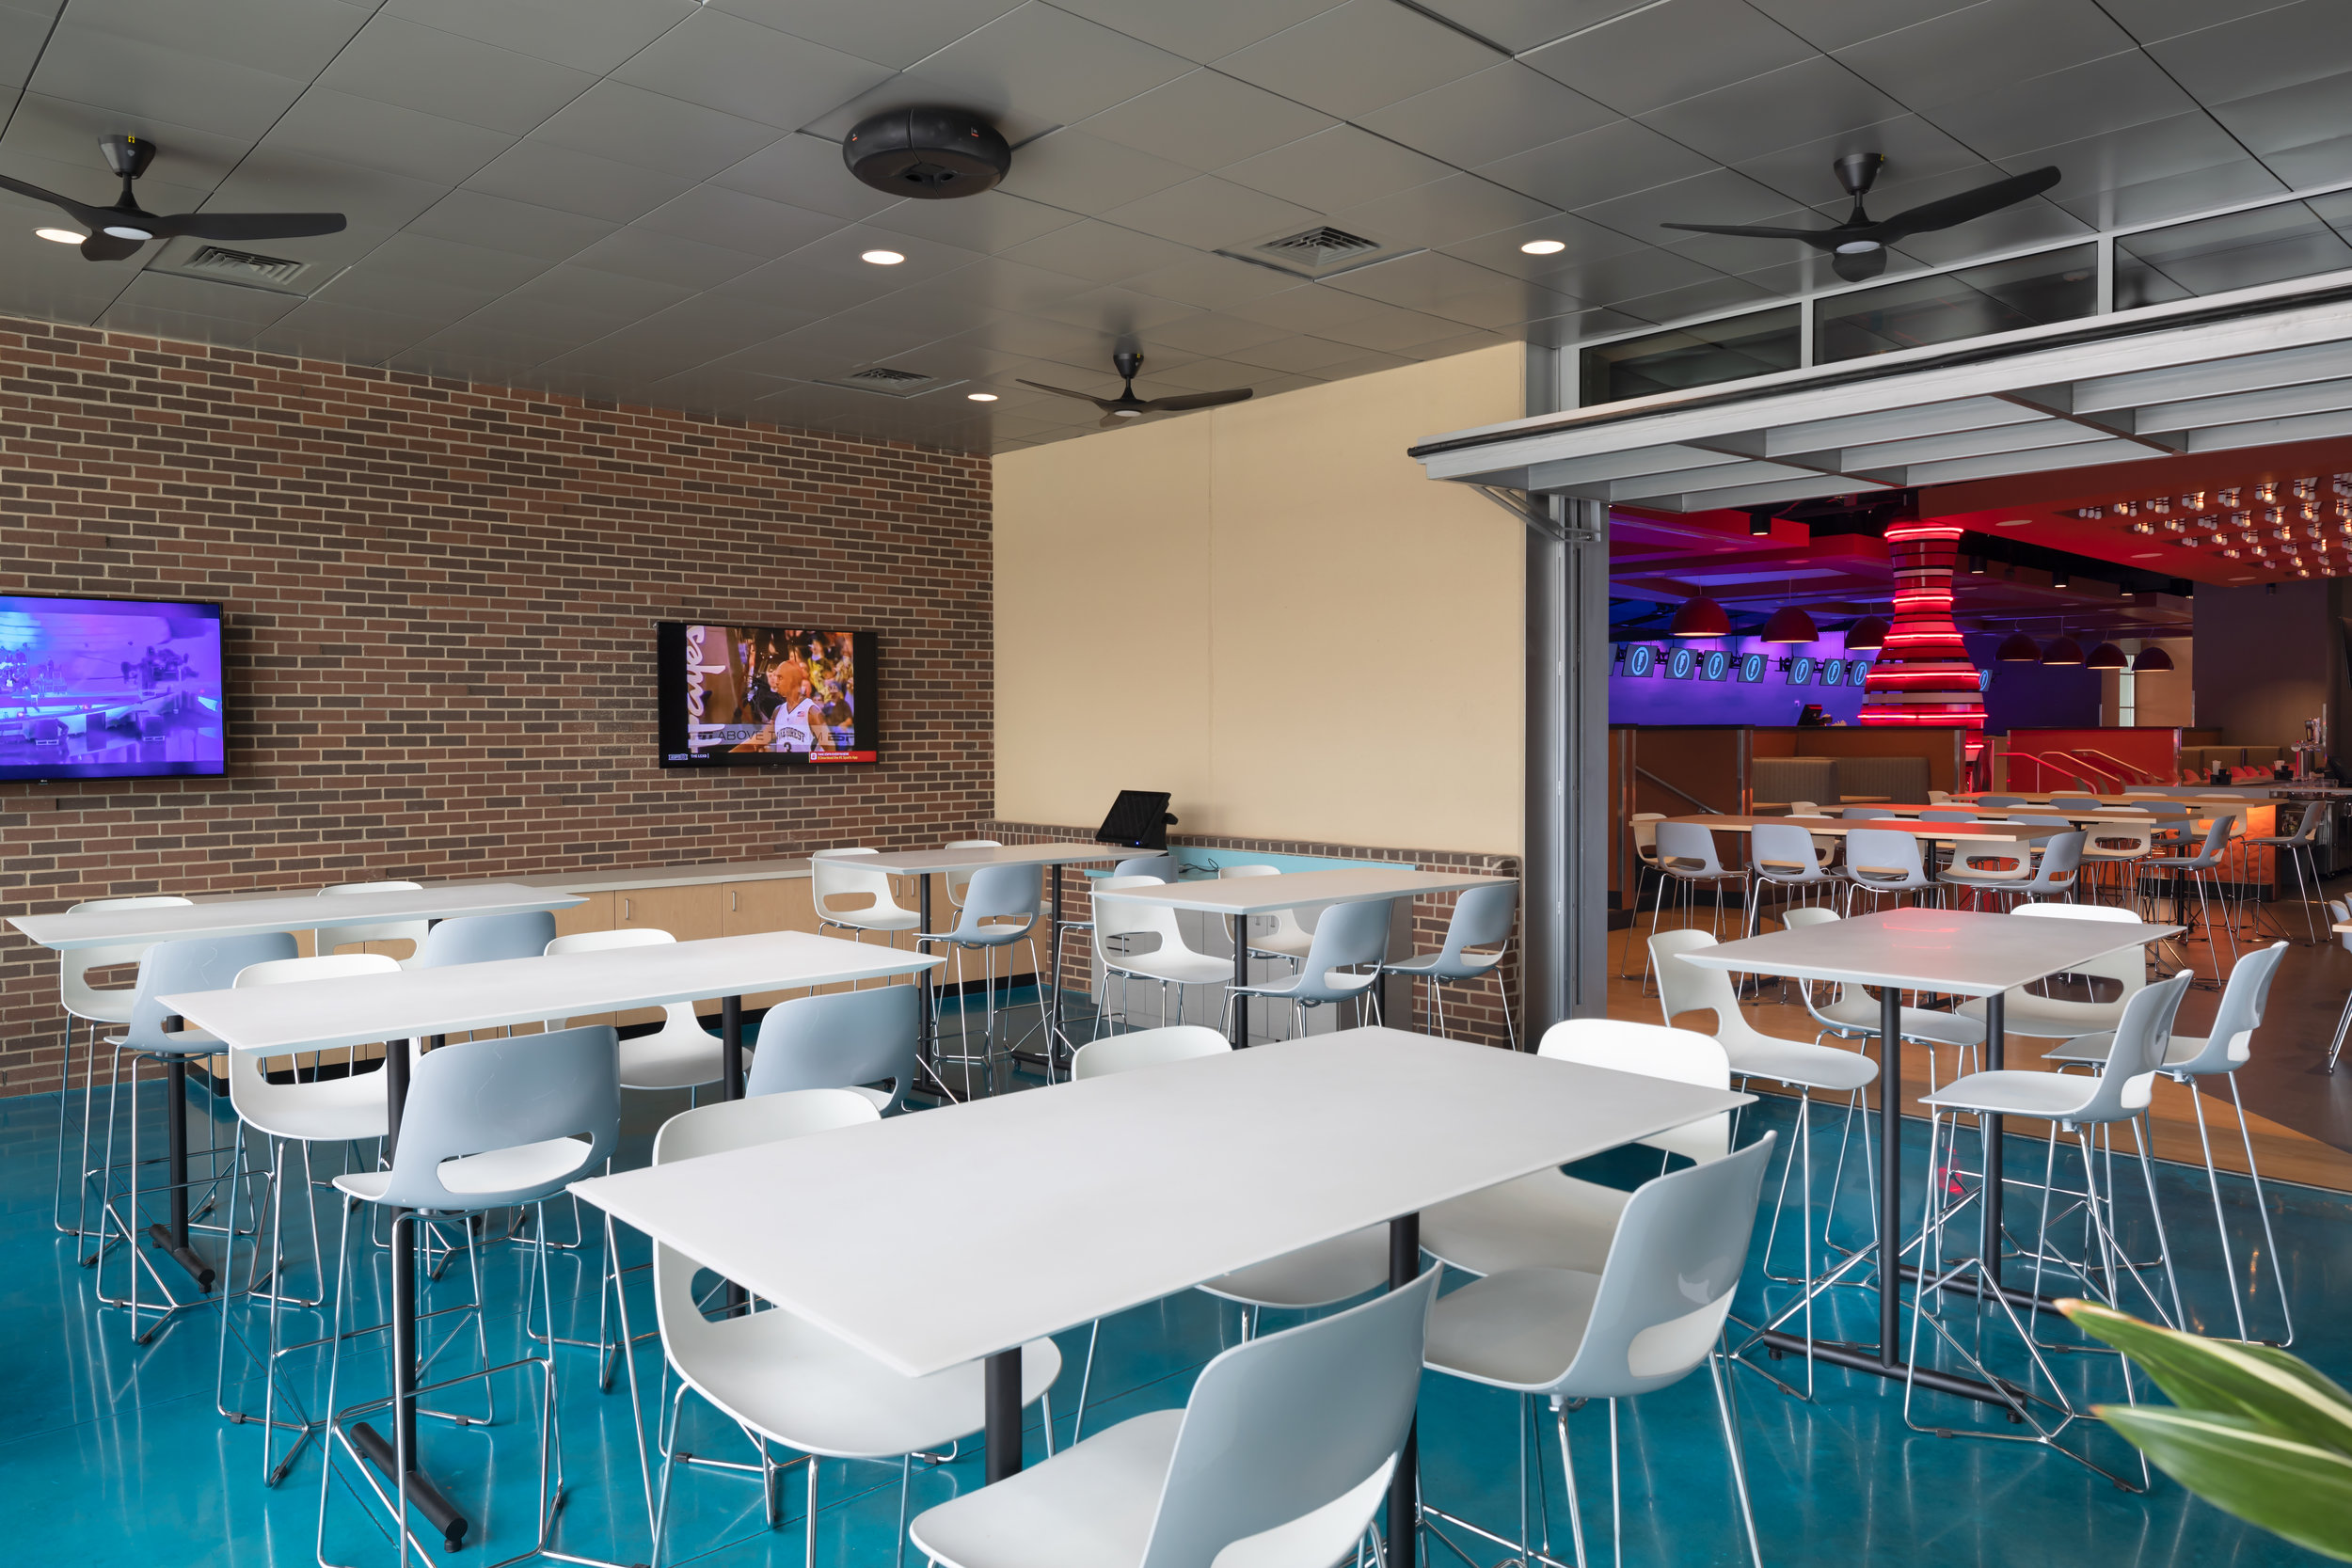 ADW-Entertainment-Frankie's-Fun-Park-Huntersville-NC-Exterior-Outdoor Lounge.jpg